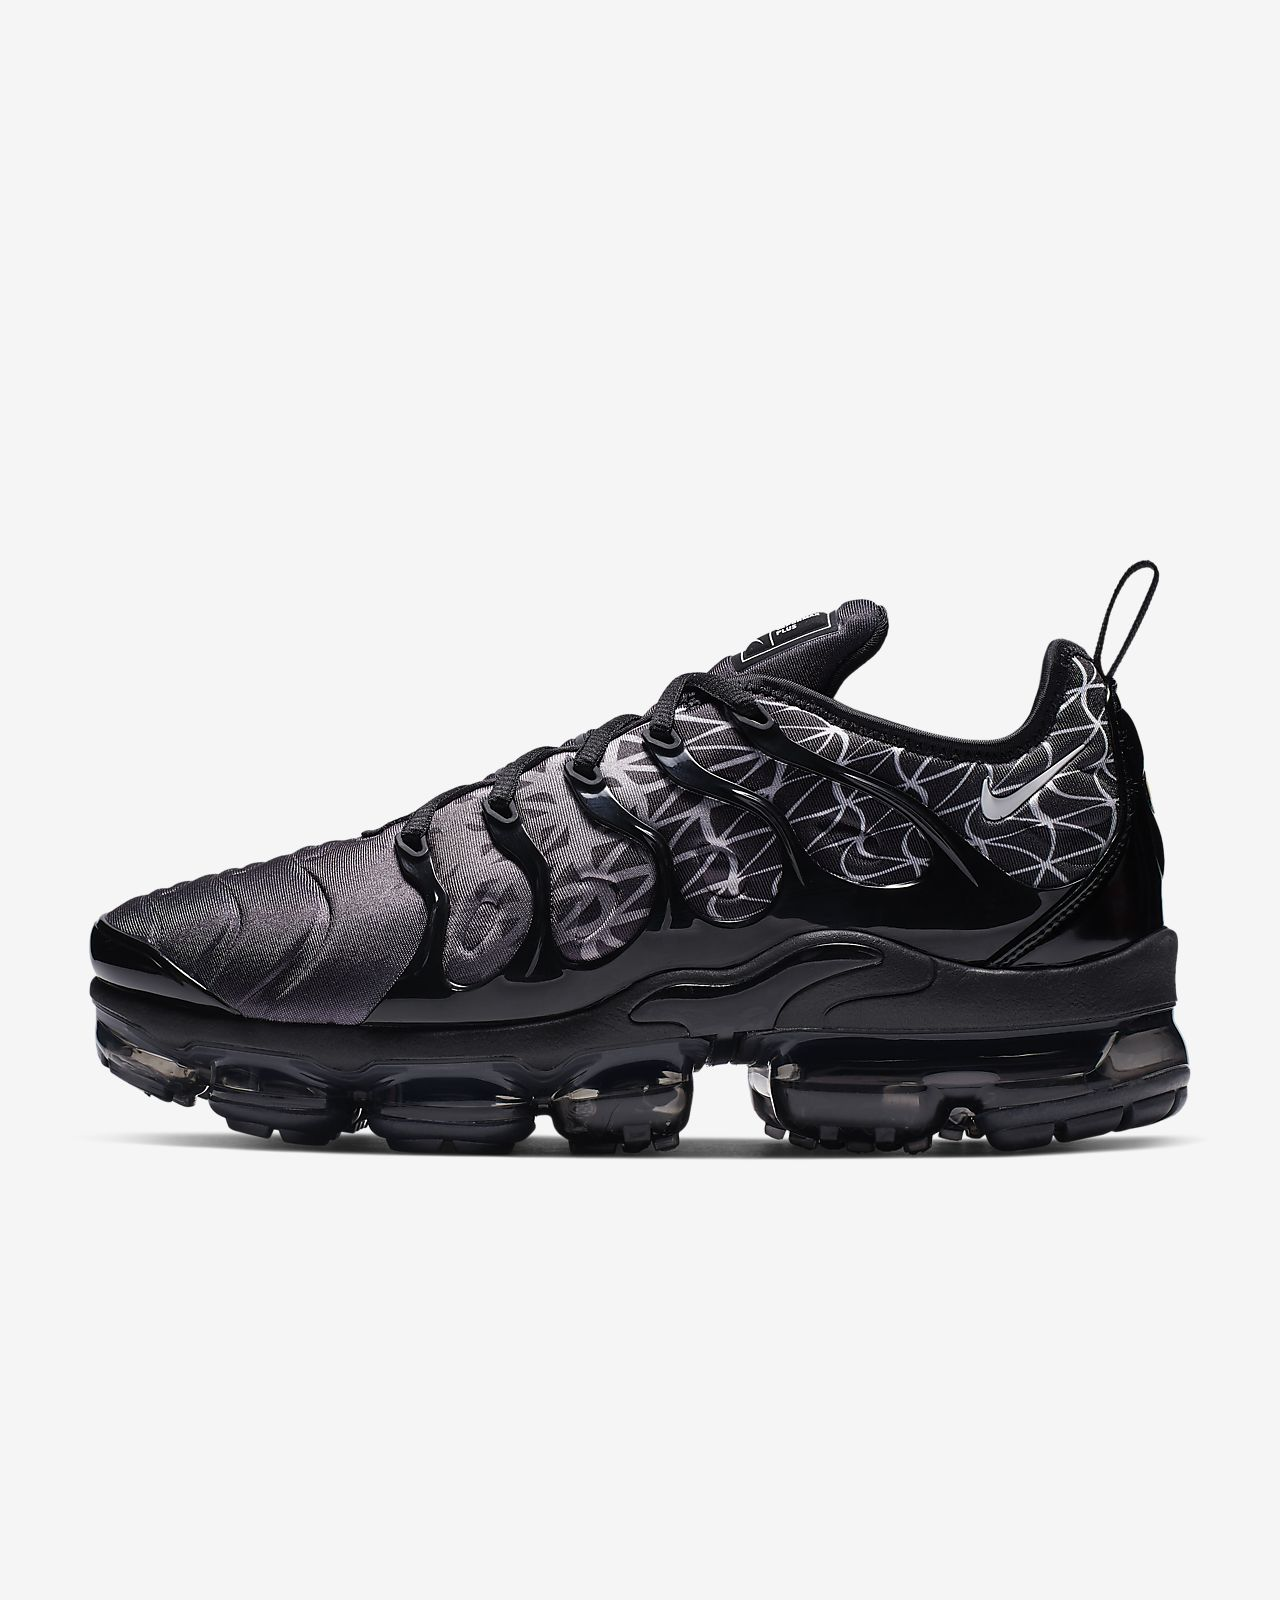 76c27a0752 Nike Air VaporMax Plus Men's Shoe. Nike.com CA